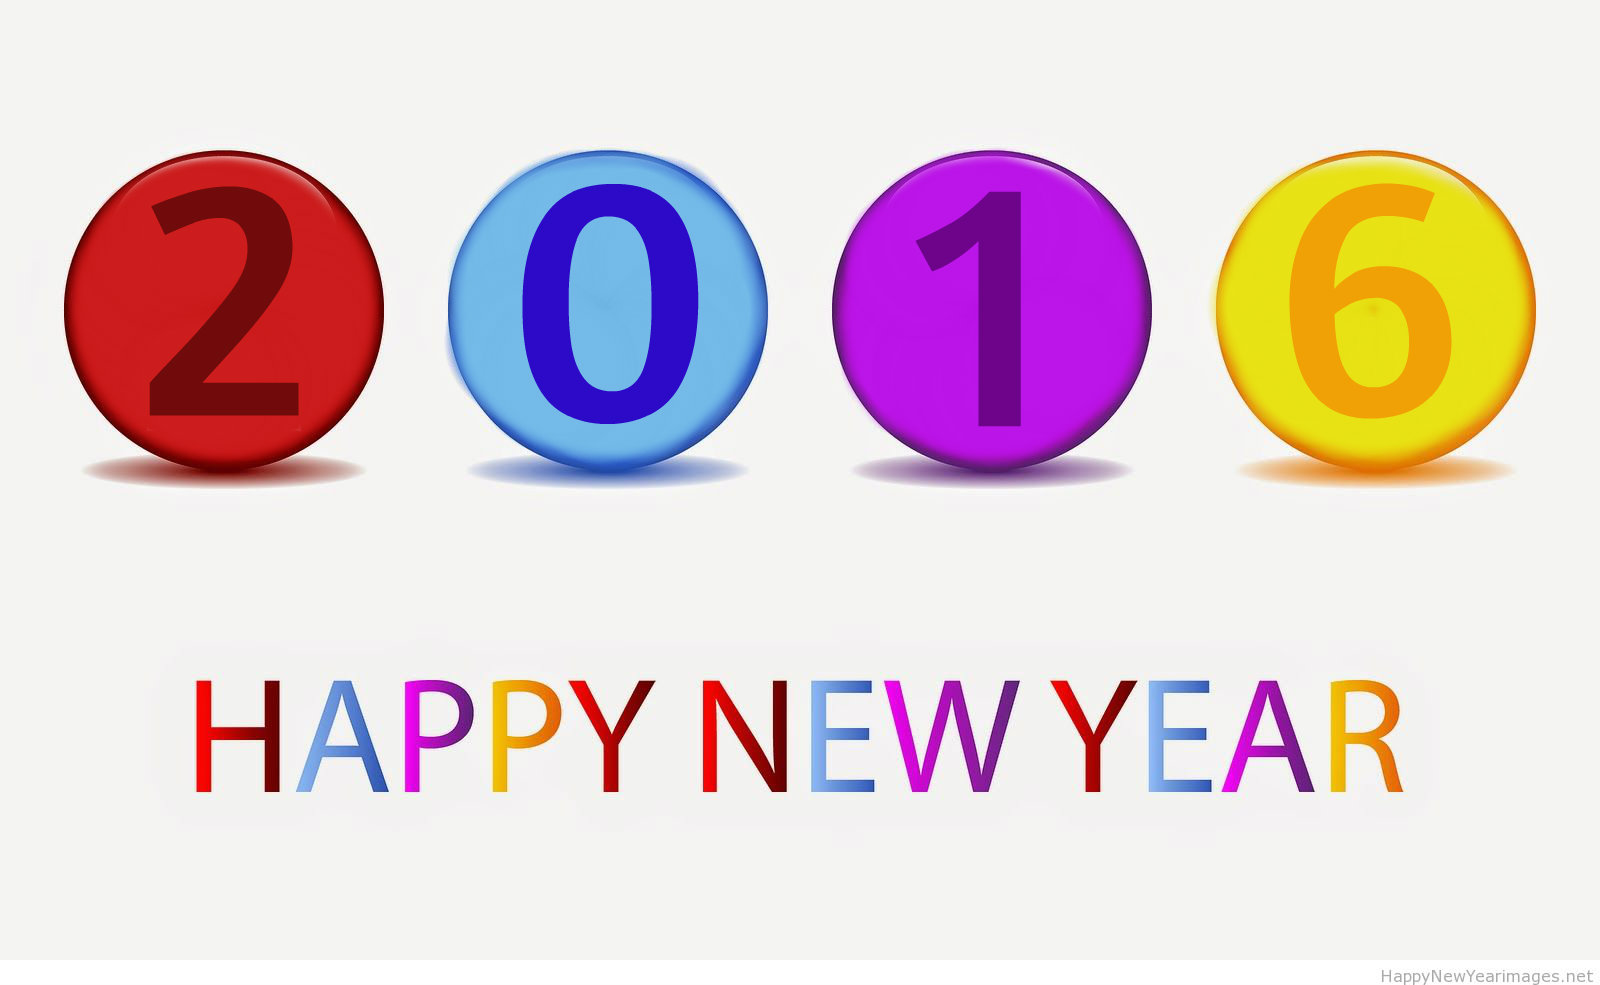 1600x985 Cameraman Clipart 6 Happy New Year Wishes Picture Welcome